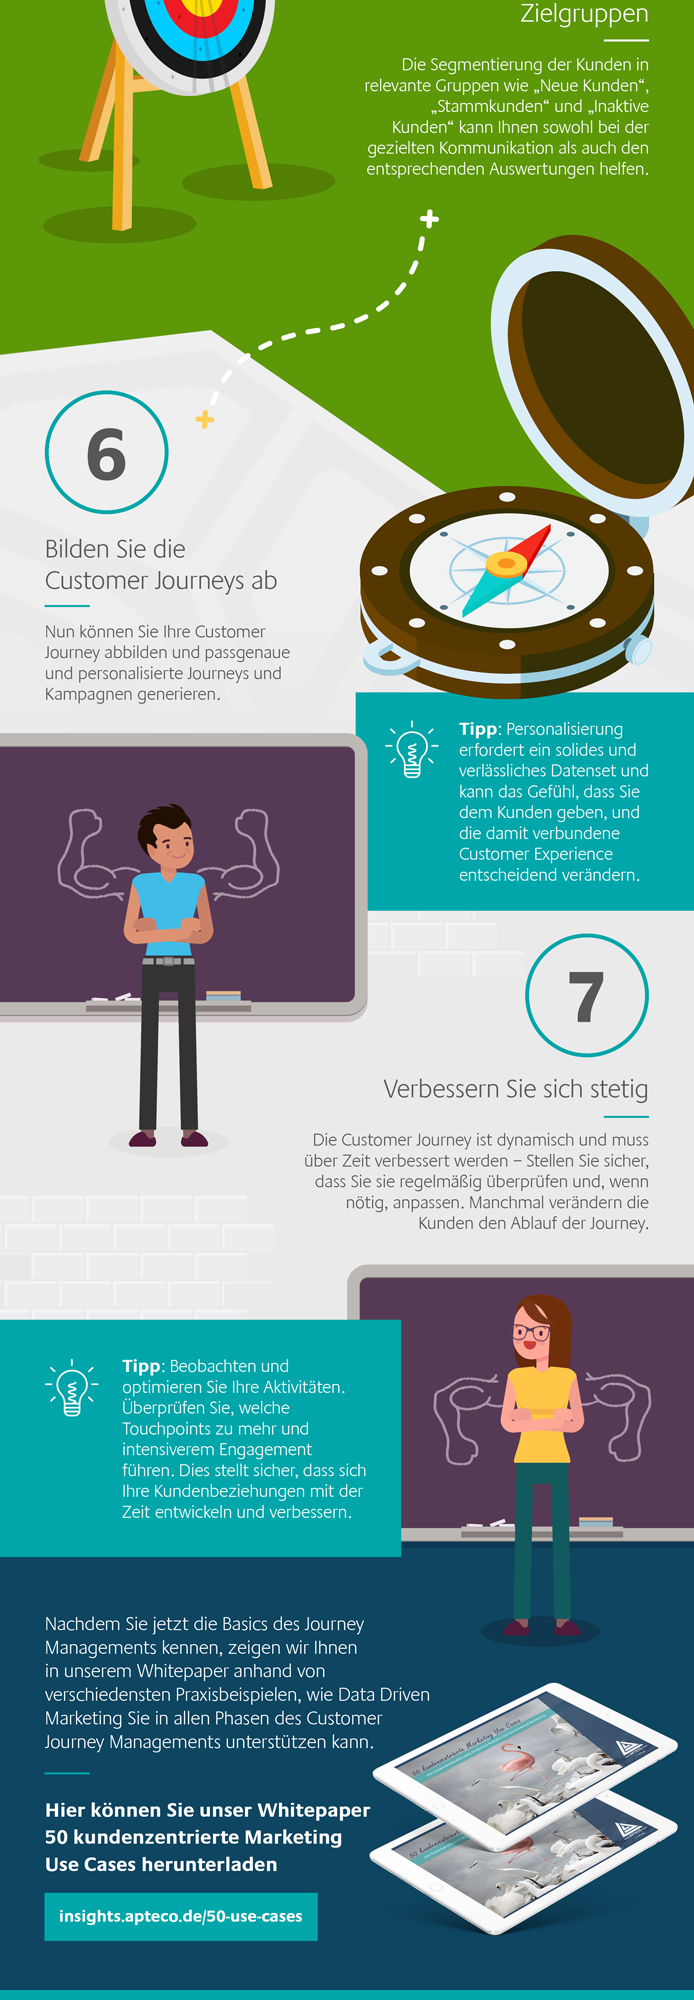 Customer Journey Teil 3